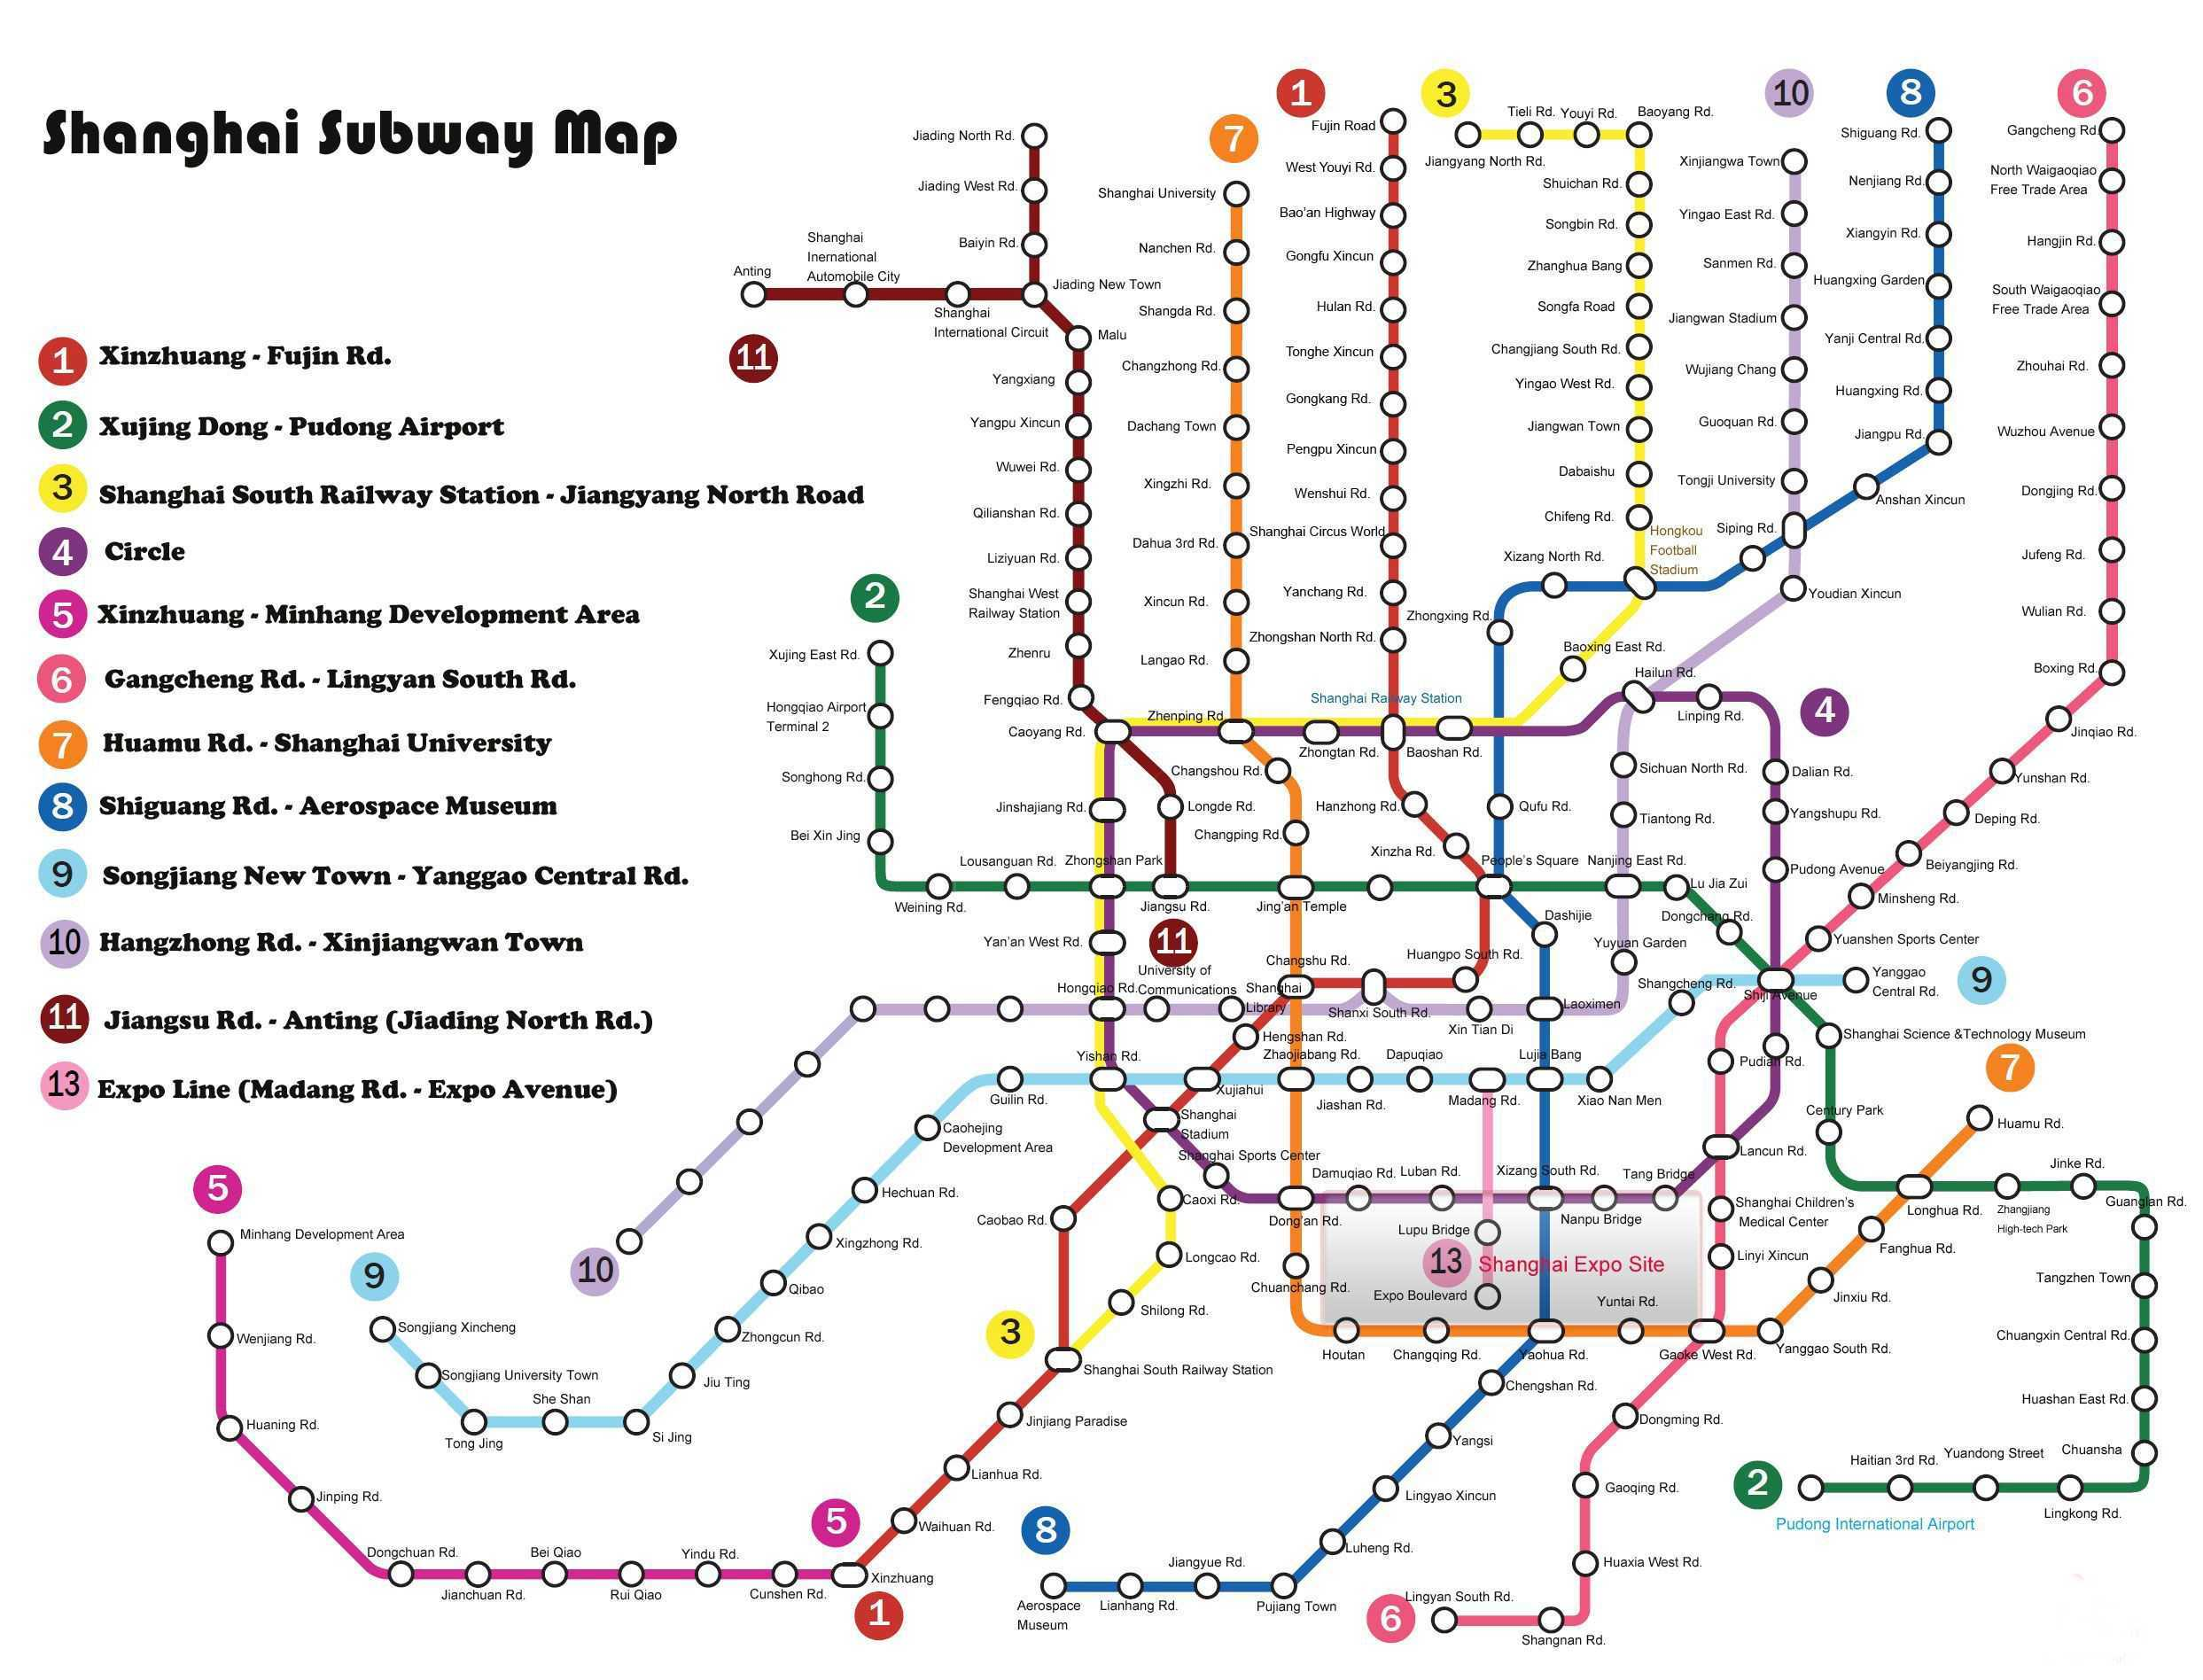 Number 7 Subway Map.China Subway Maps Beijing Subway Map Shanghai Subway Map